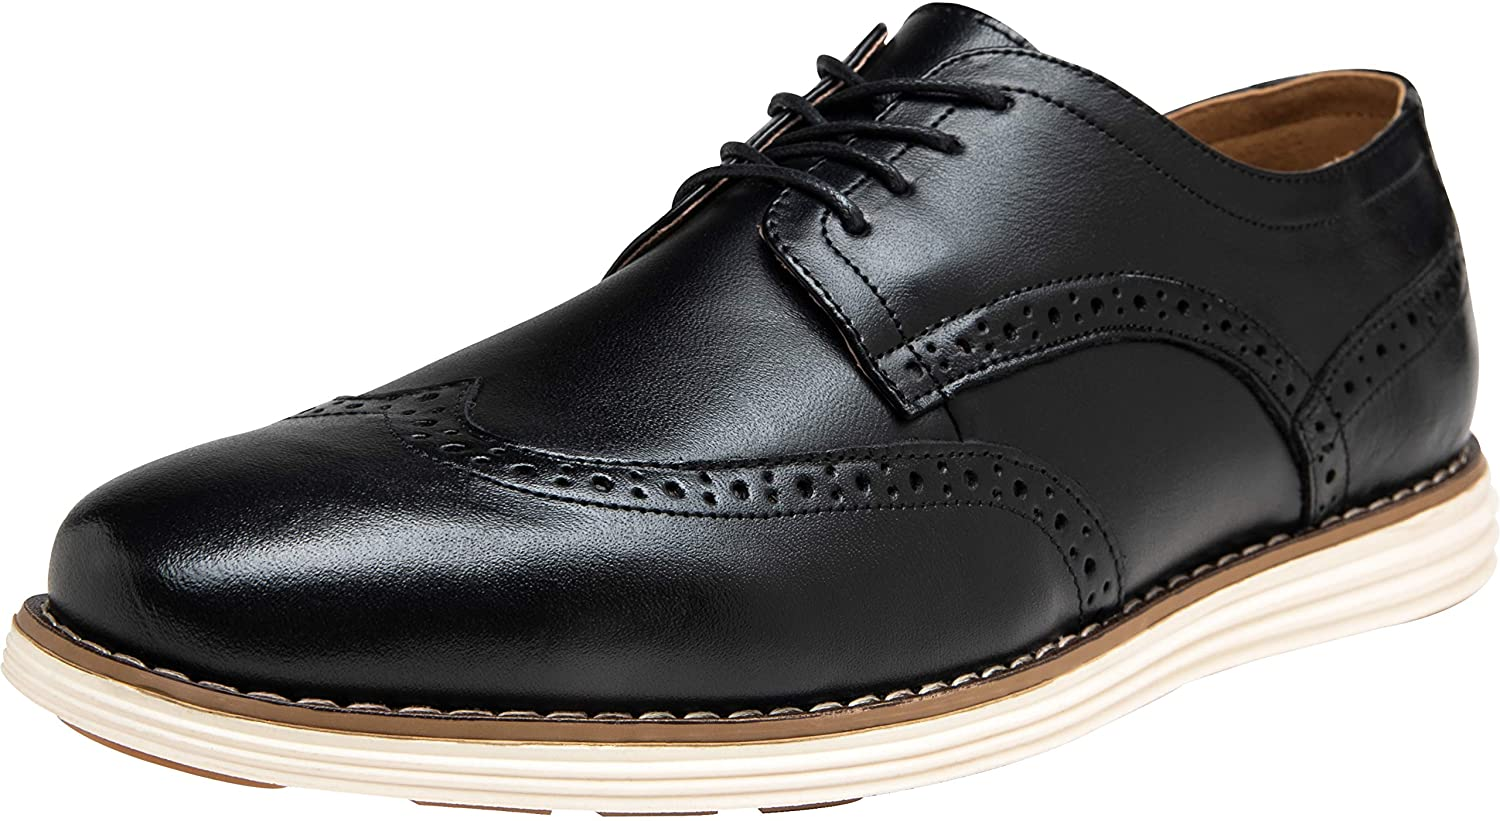 Jousen Men's Dress Shoes Leather Casual Brogue Busi Oxford High Max 68% OFF quality new